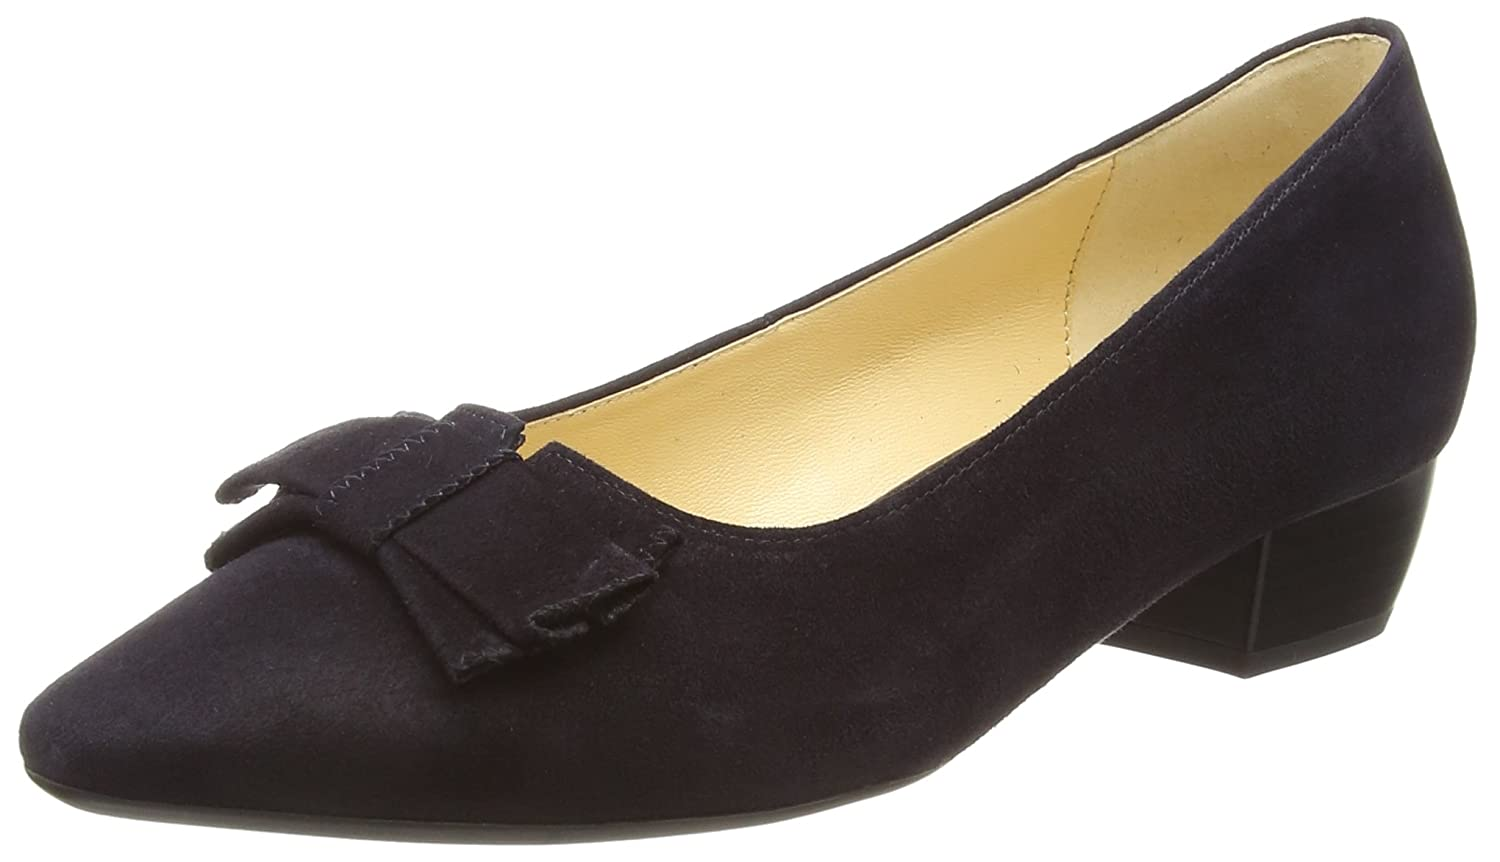 Gabor Blondel Damen Pumps37.5 EU|Blau (Dunkelblaues Wildleder)